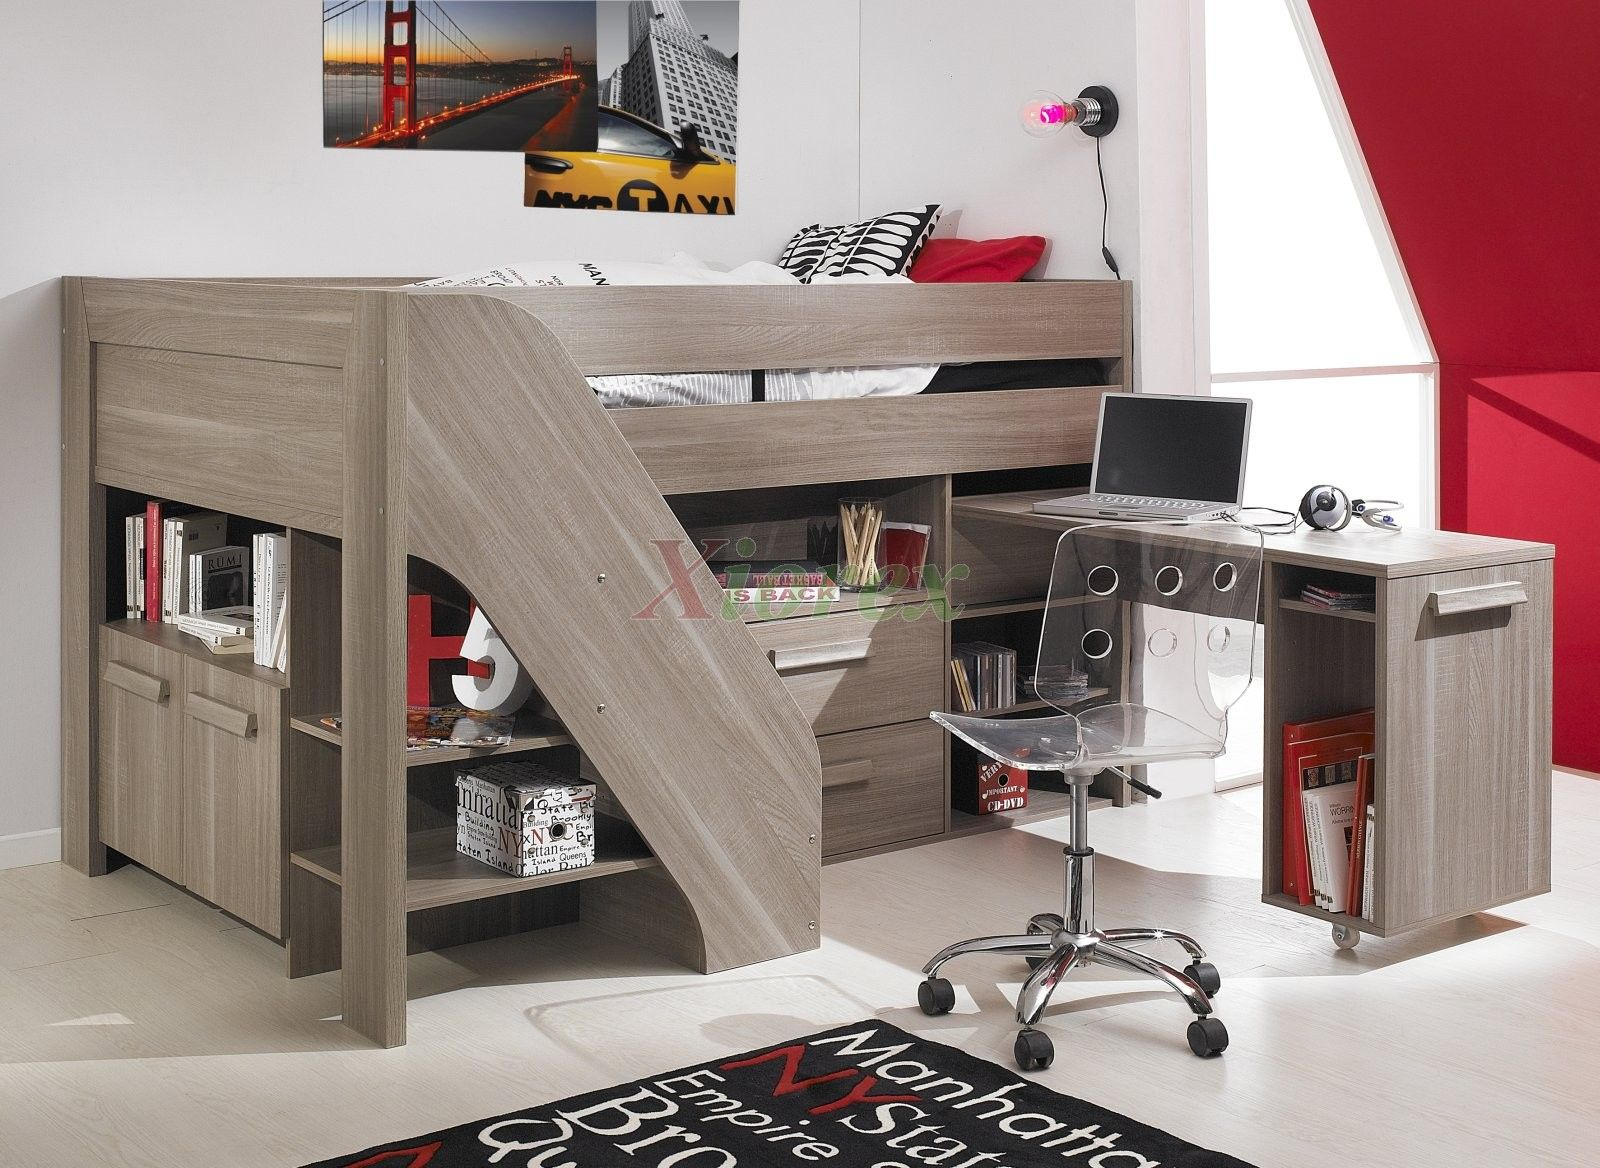 Stora loft bed ideas  Loft Beds with Desk and Storage  Modern Living Room Sets Cheap